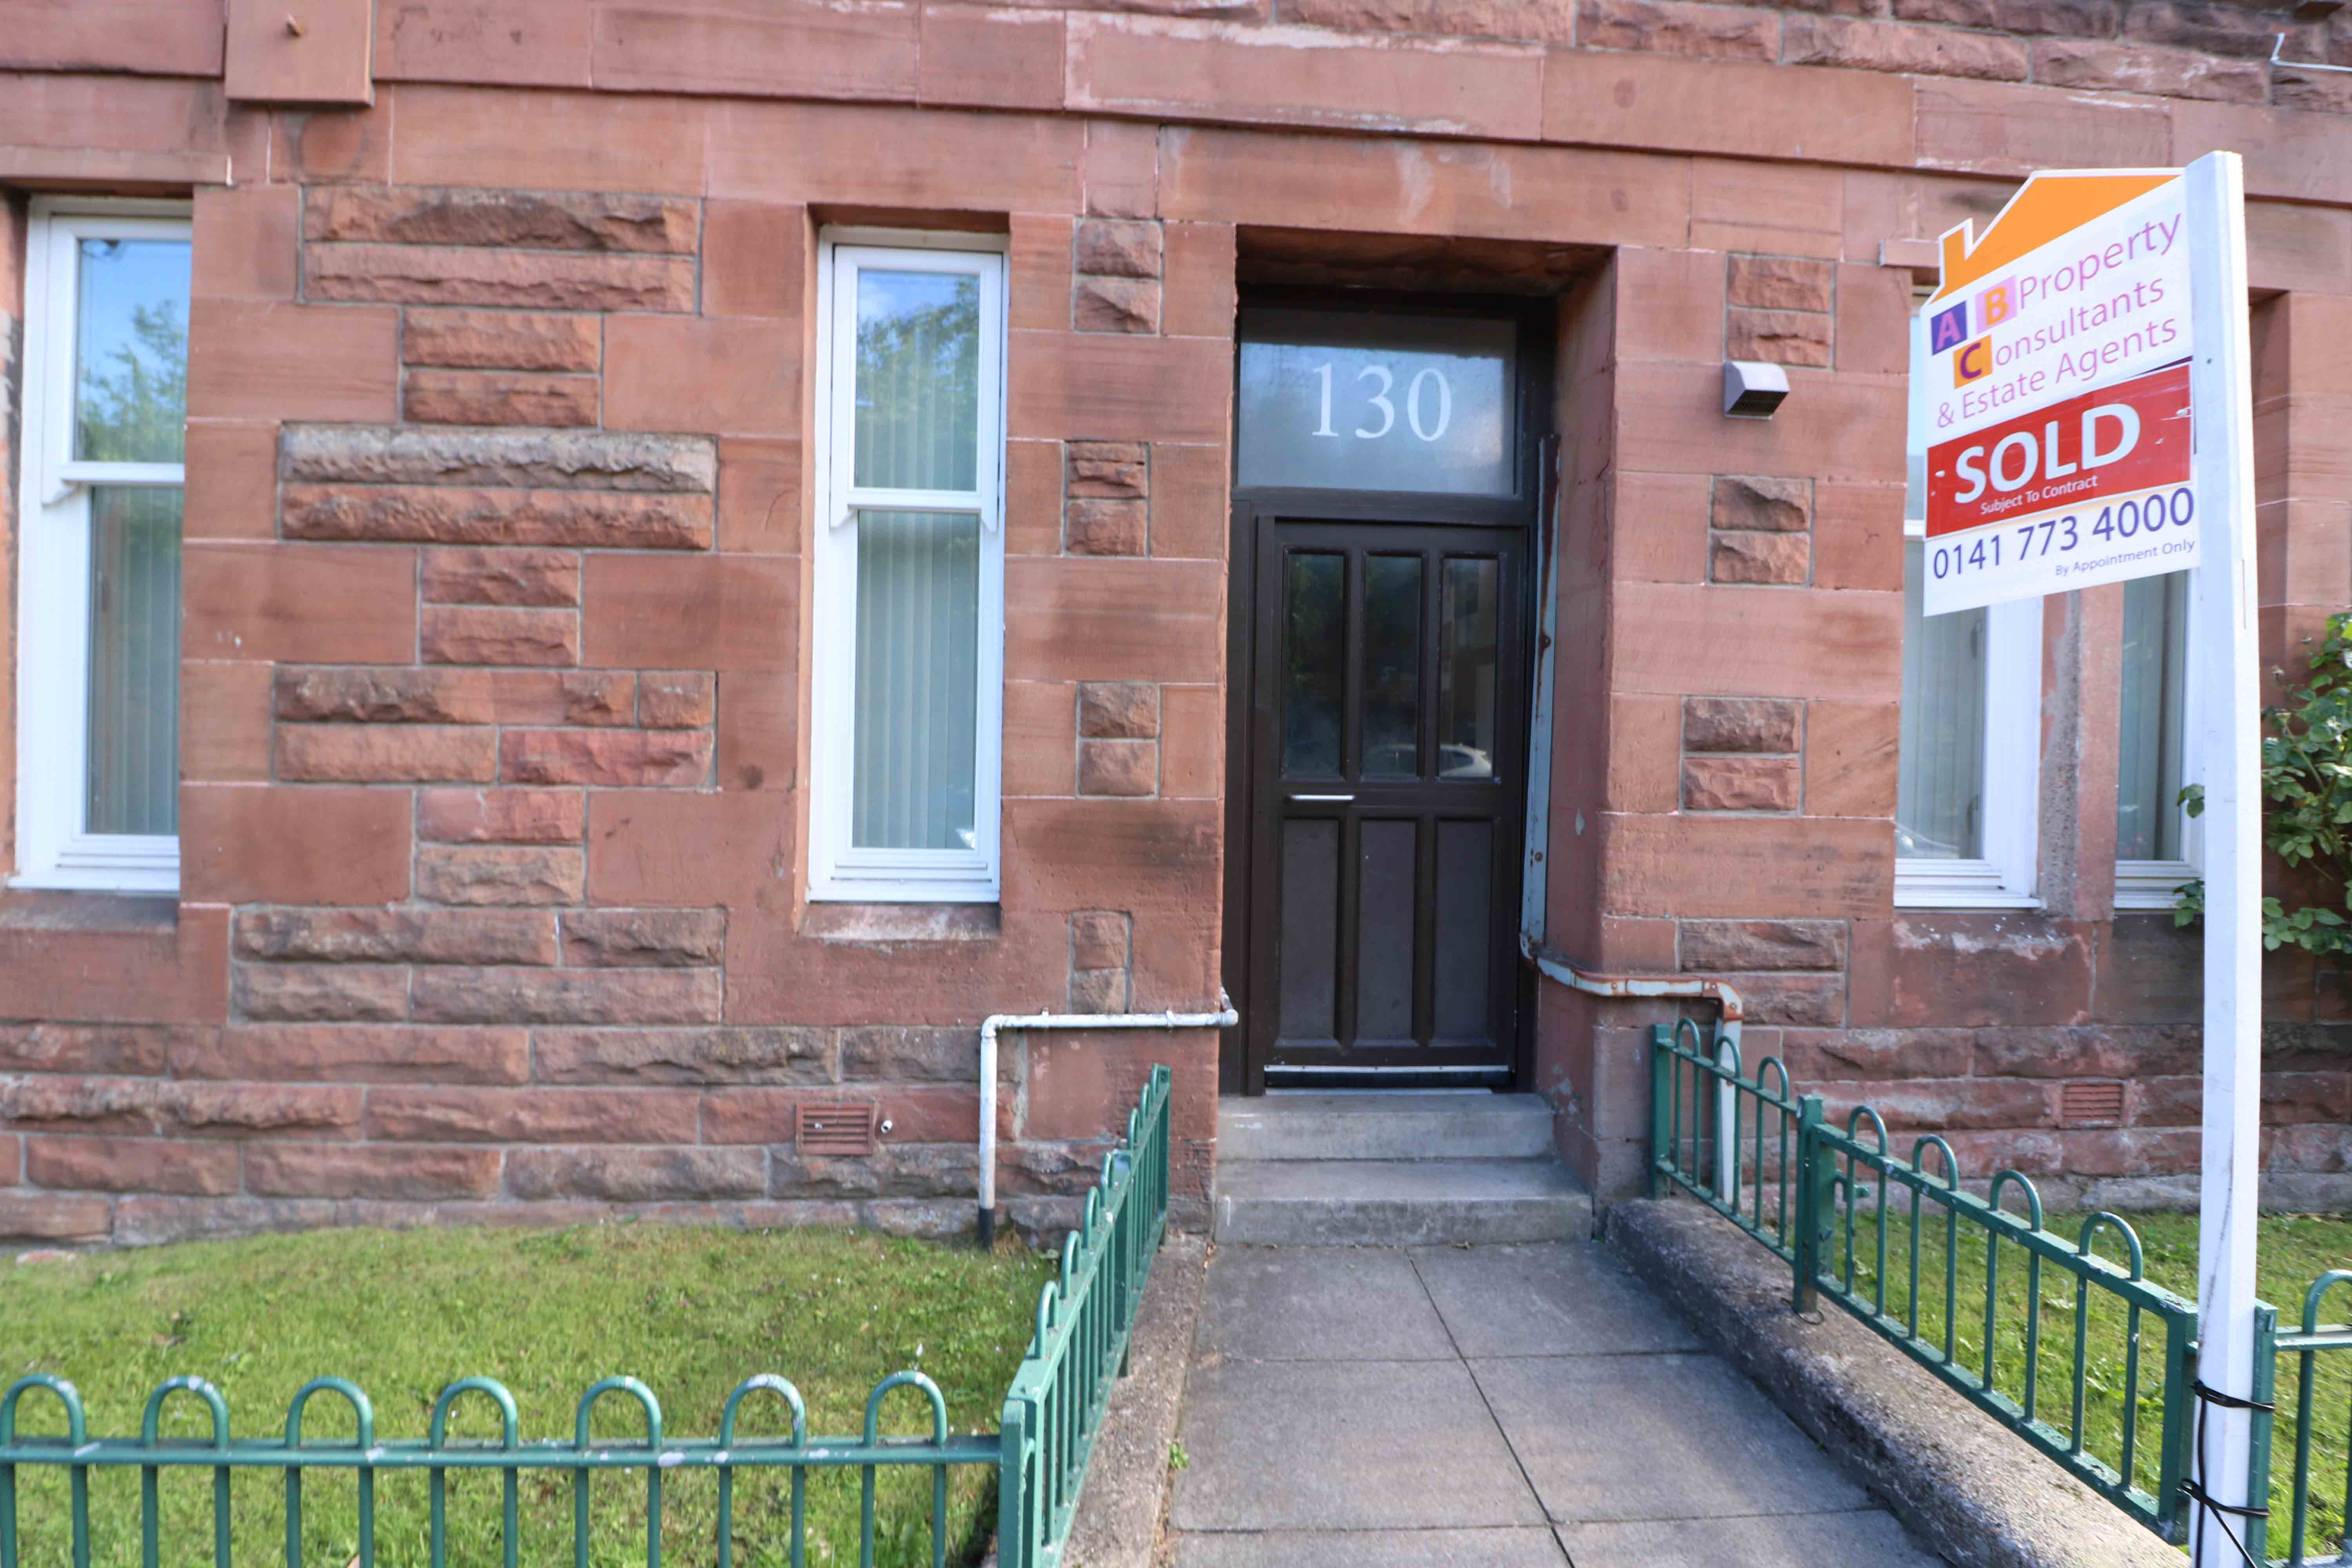 3 Bedroom Flat – Budhill Avenue – Budhill